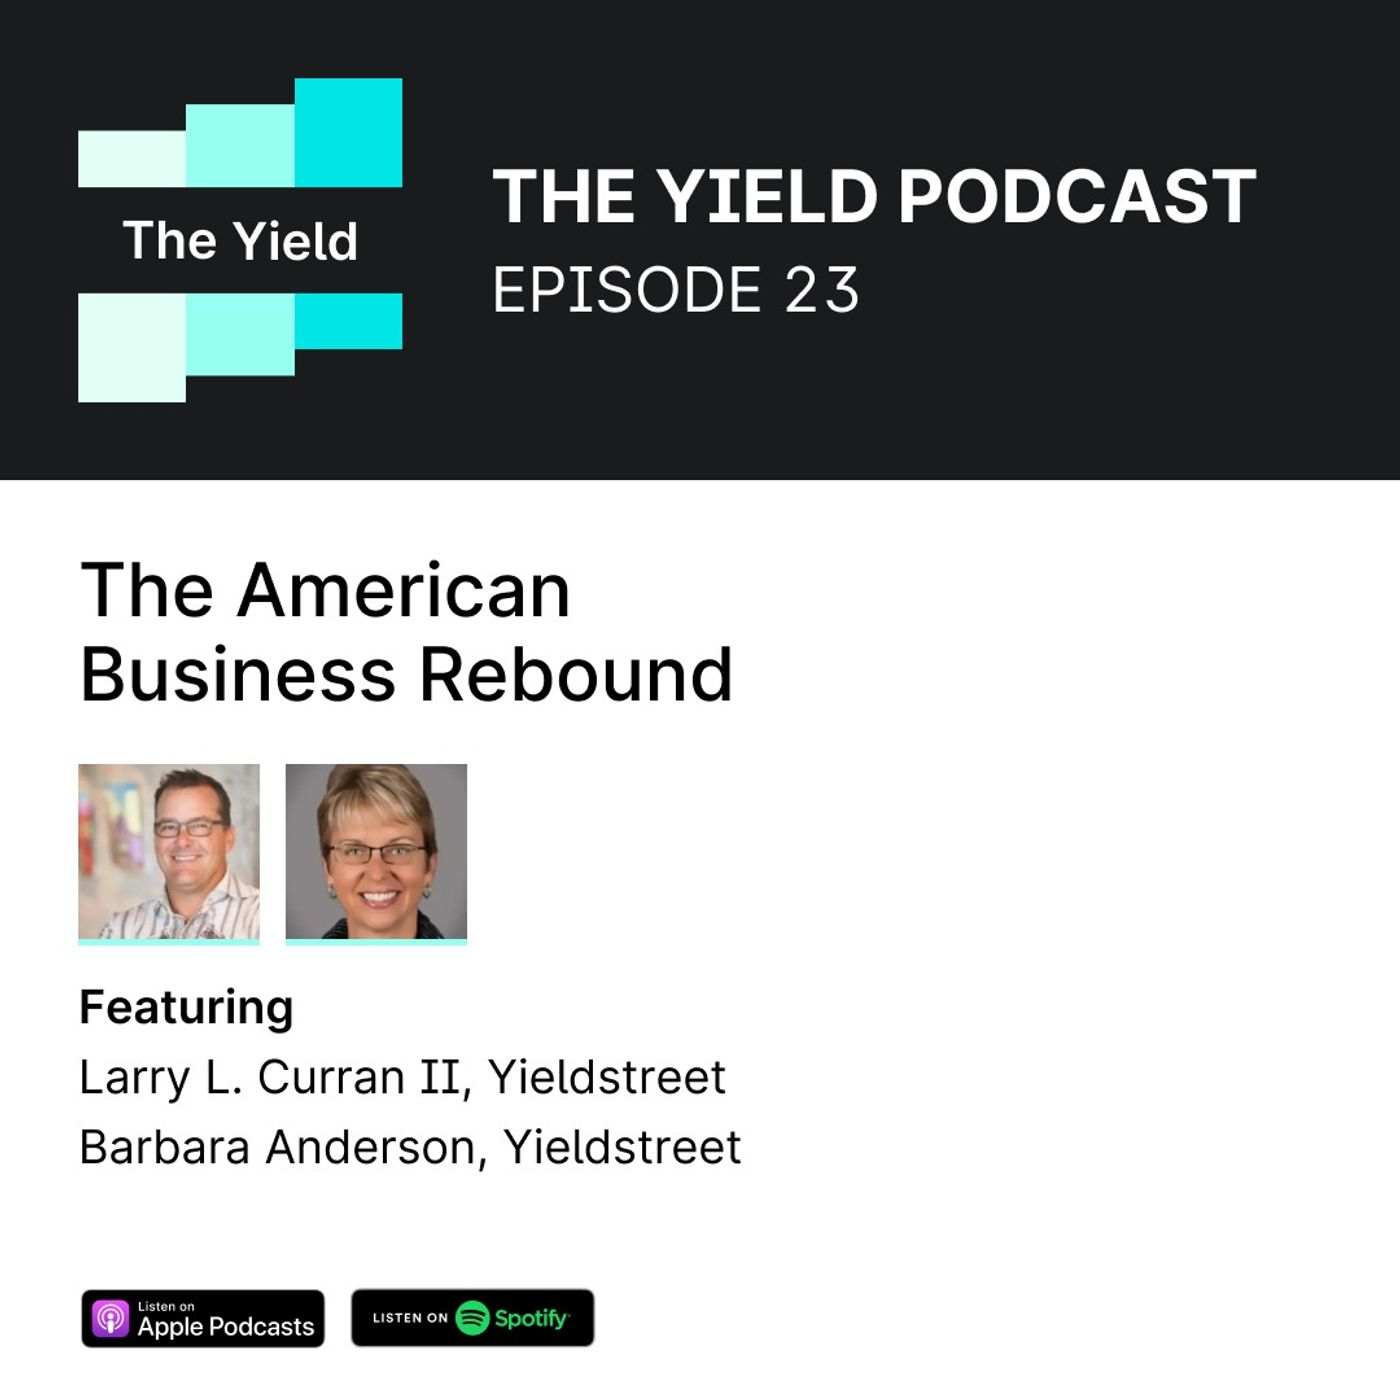 The American Business Rebound